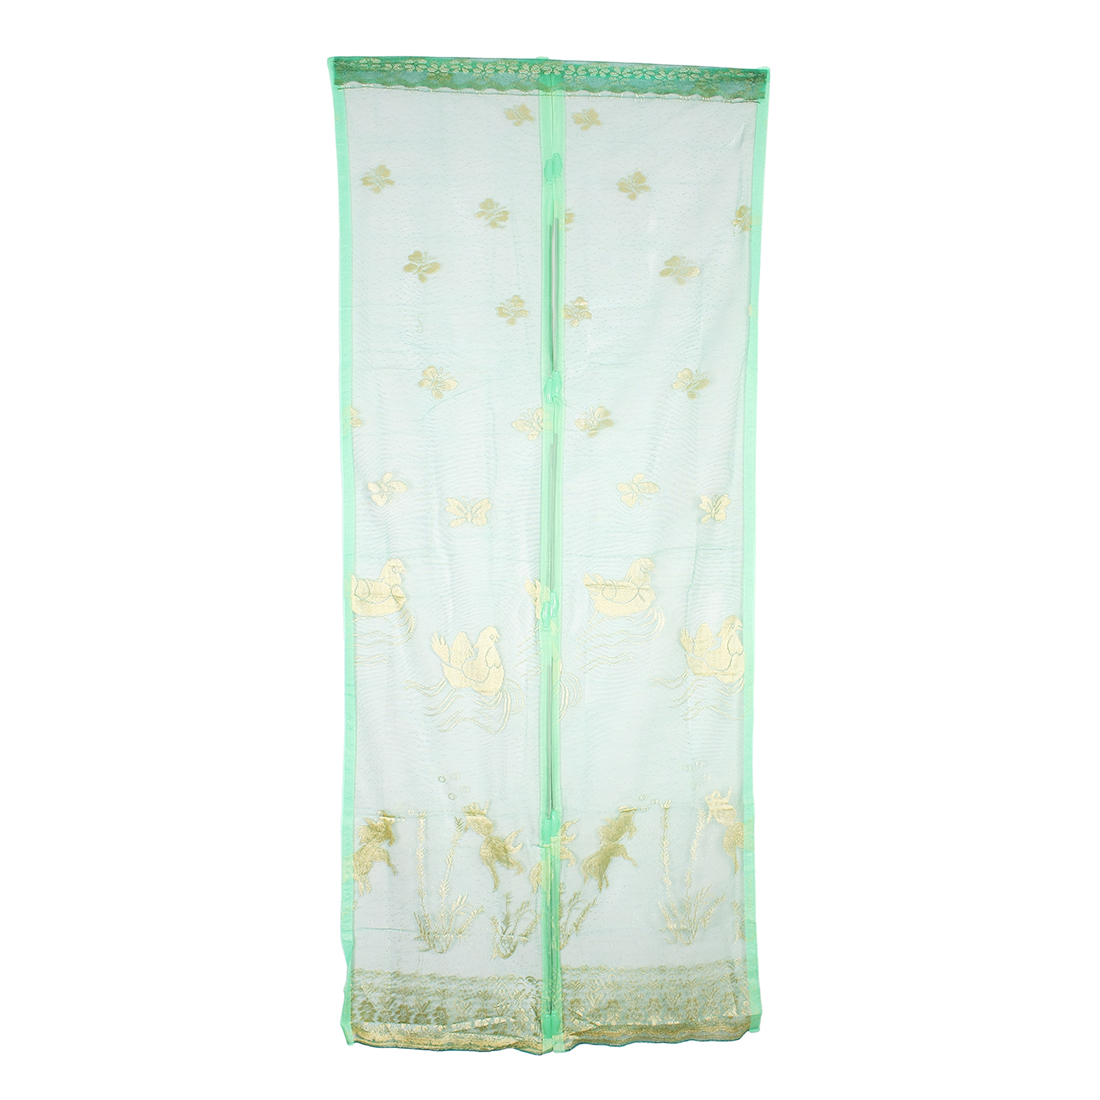 Flower Pattern Magic Curtain Soft Insect Screen Door Mesh Dark Green